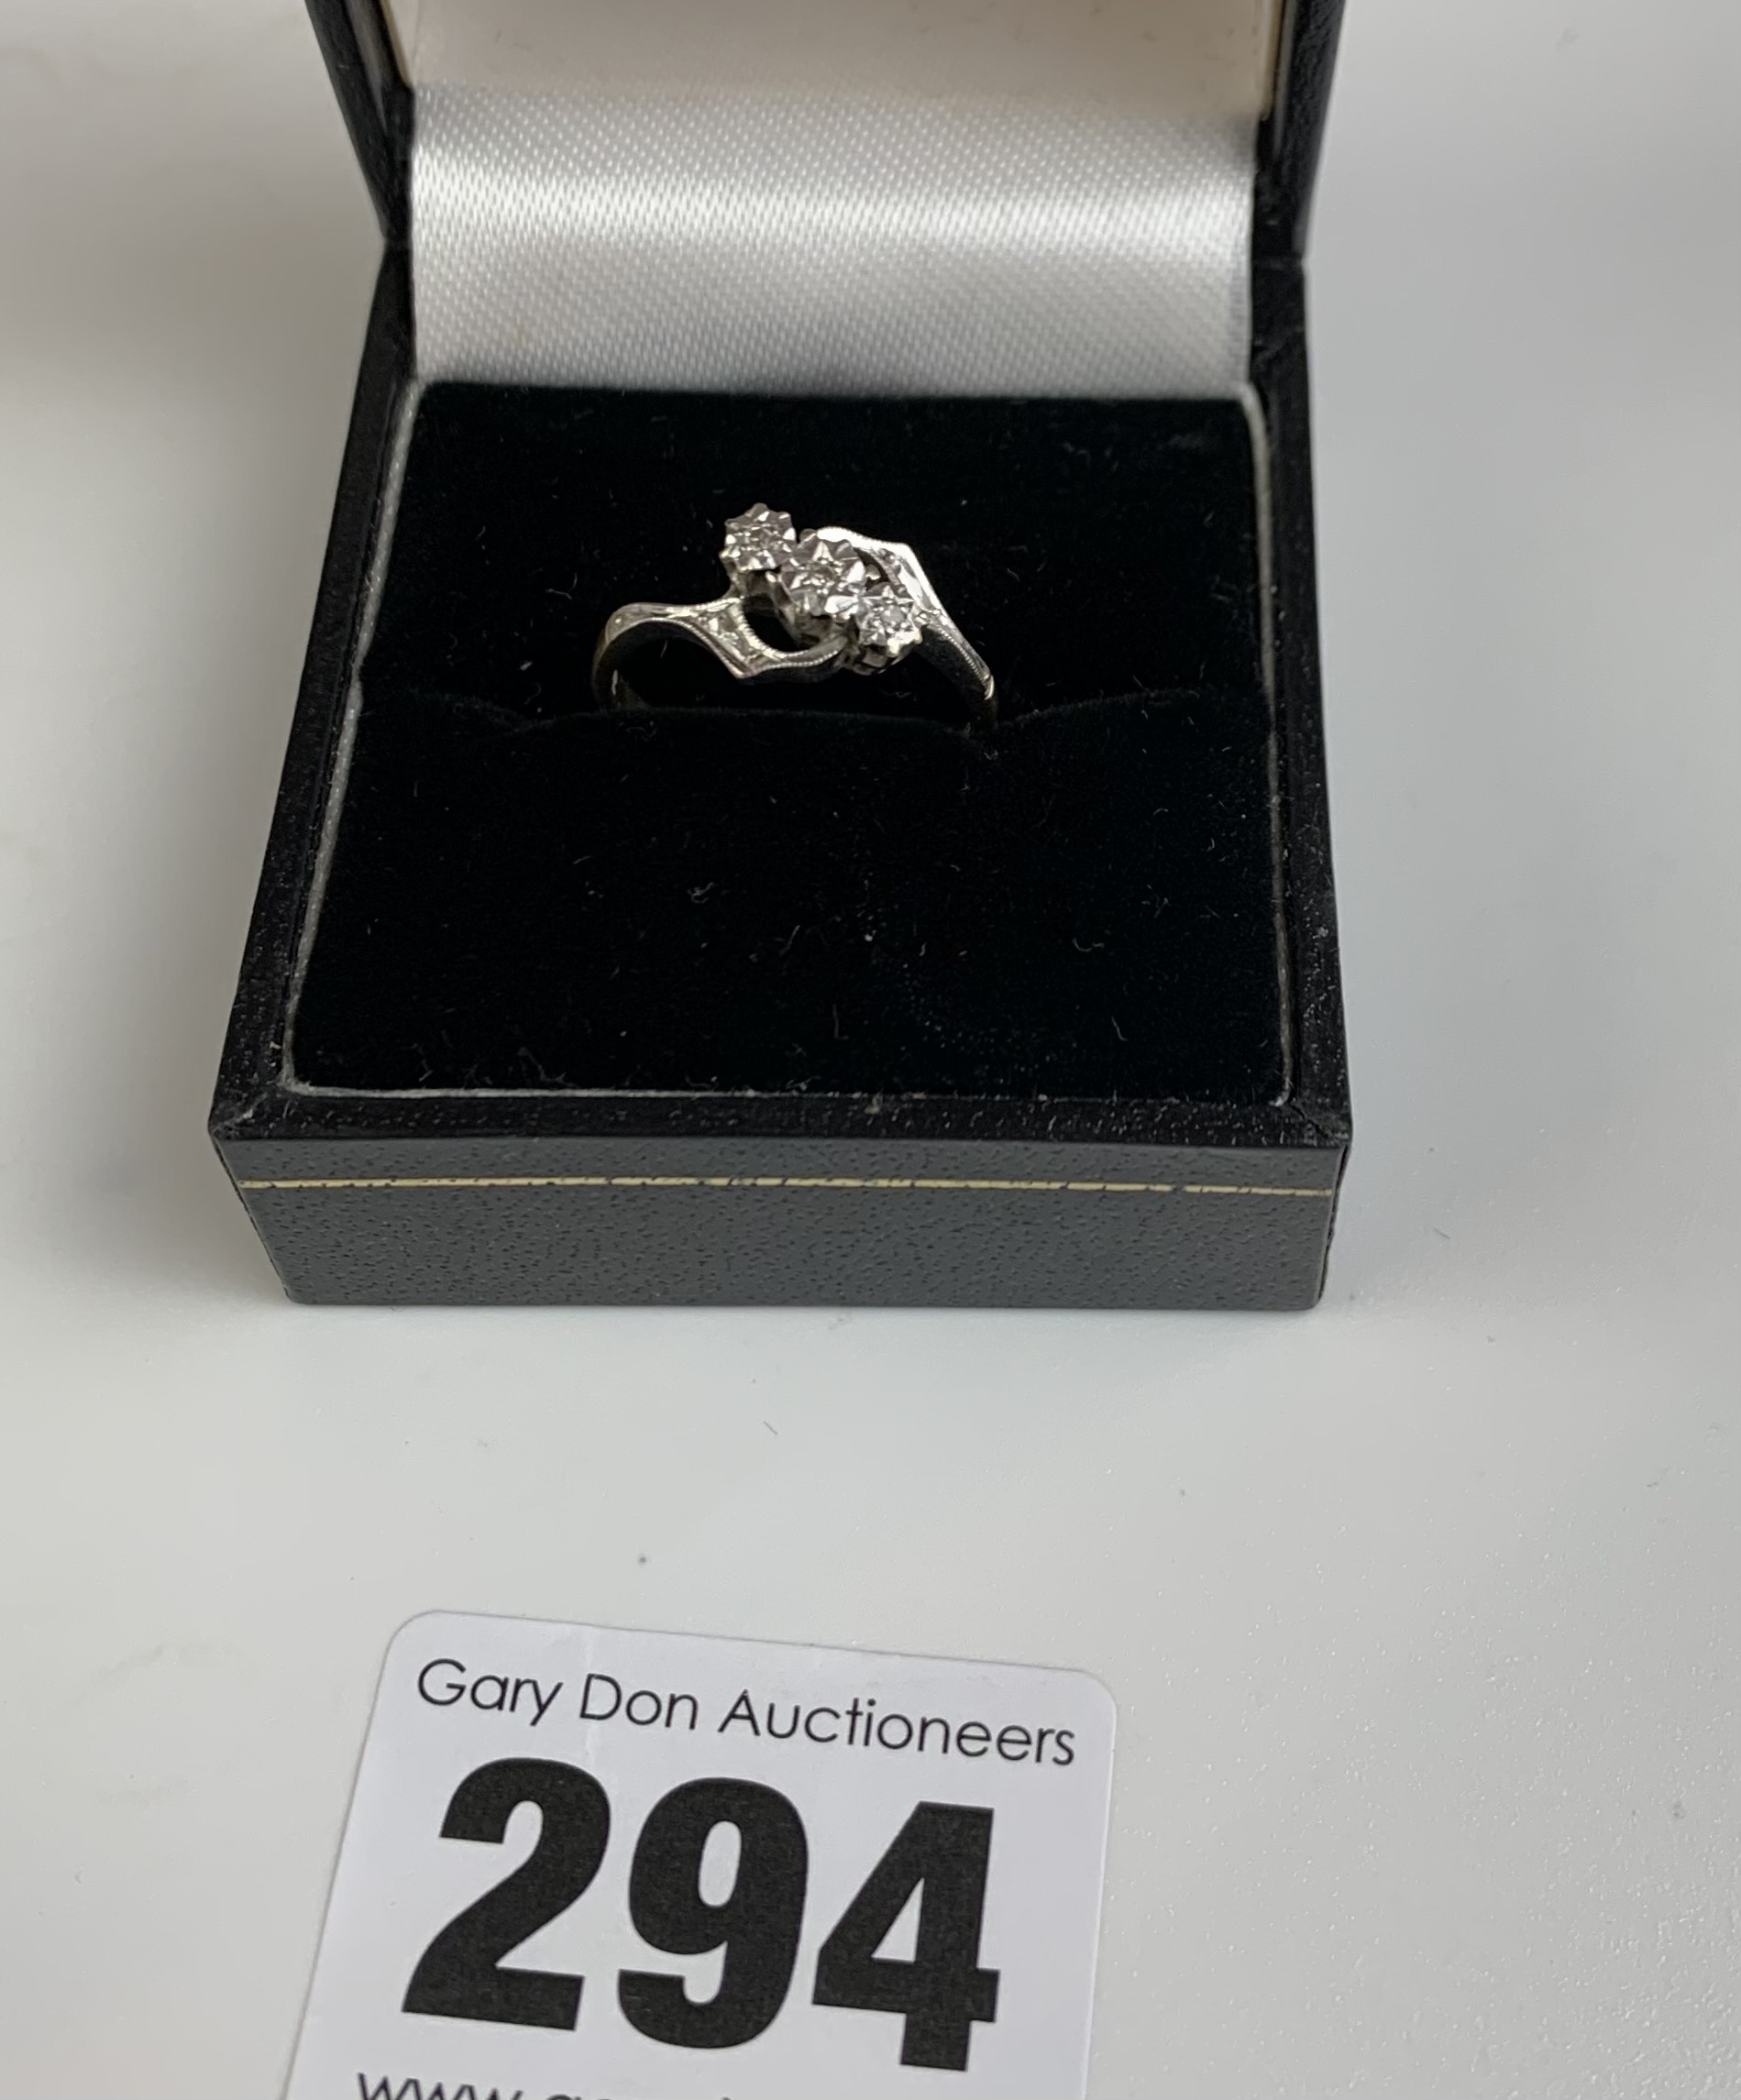 18k gold and 3 stone diamond ring, size K, w: 2.6 gms